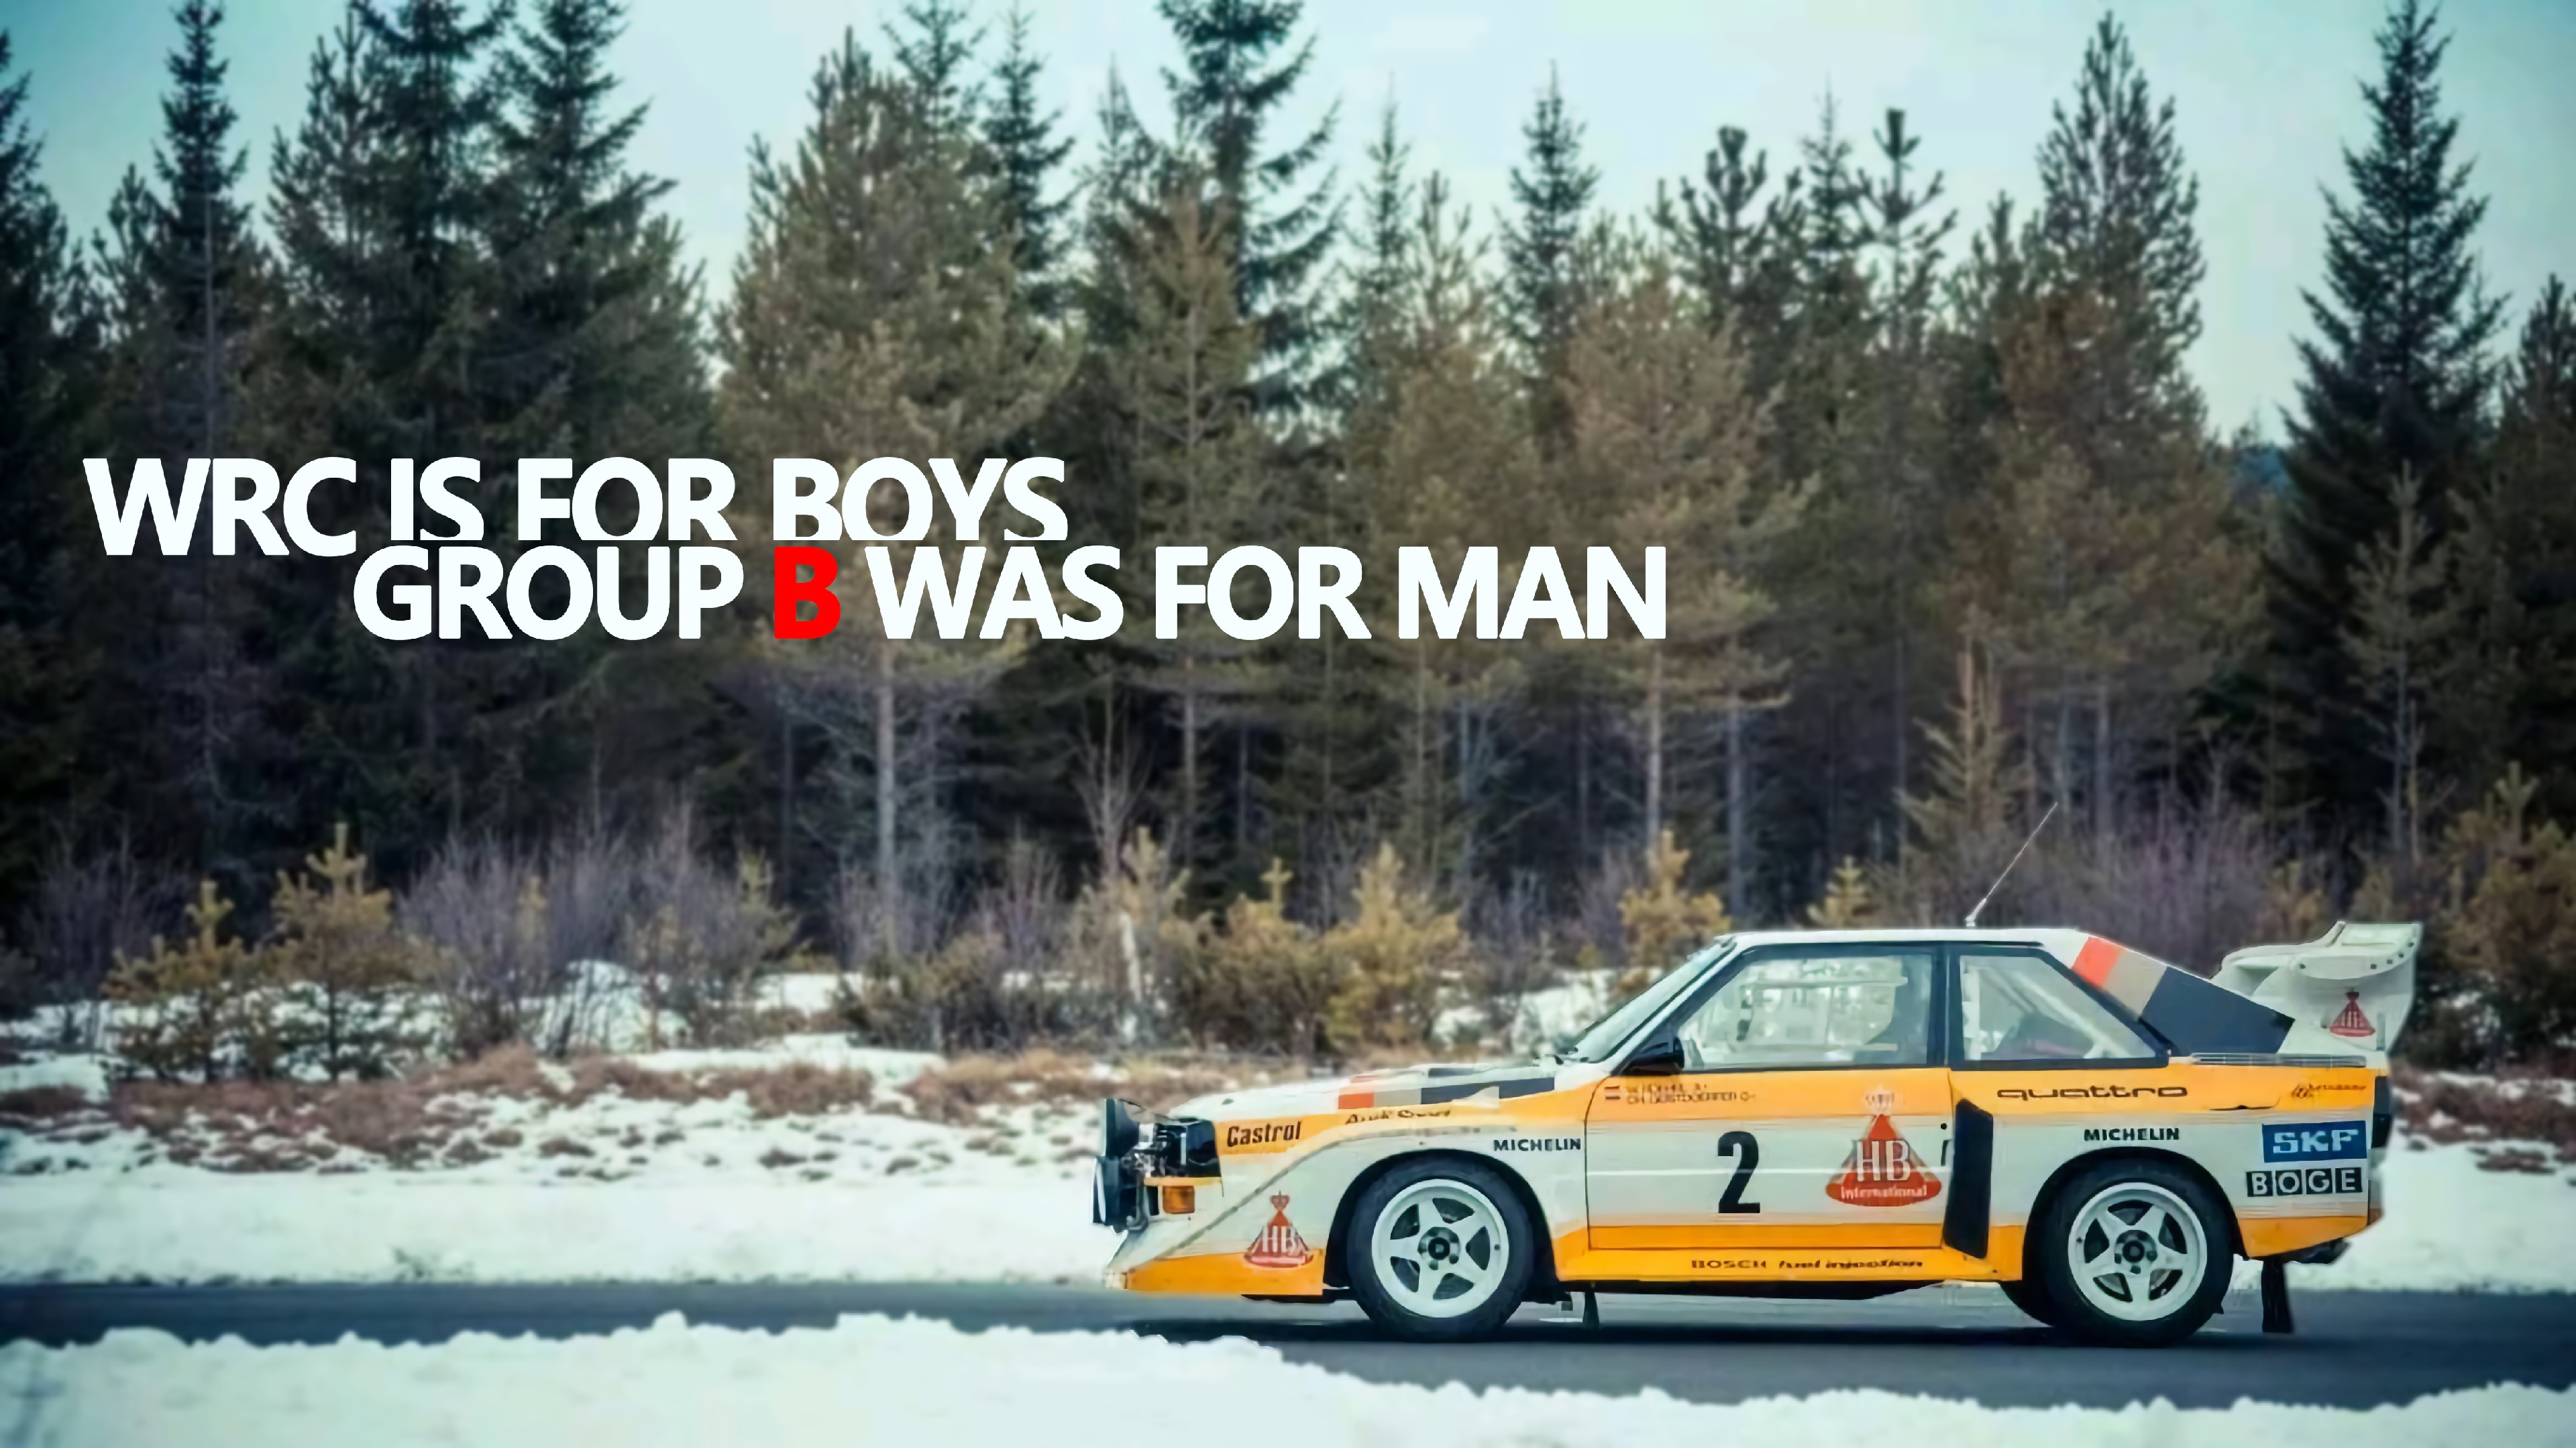 WRC is for boys Group B was for man wallpaper